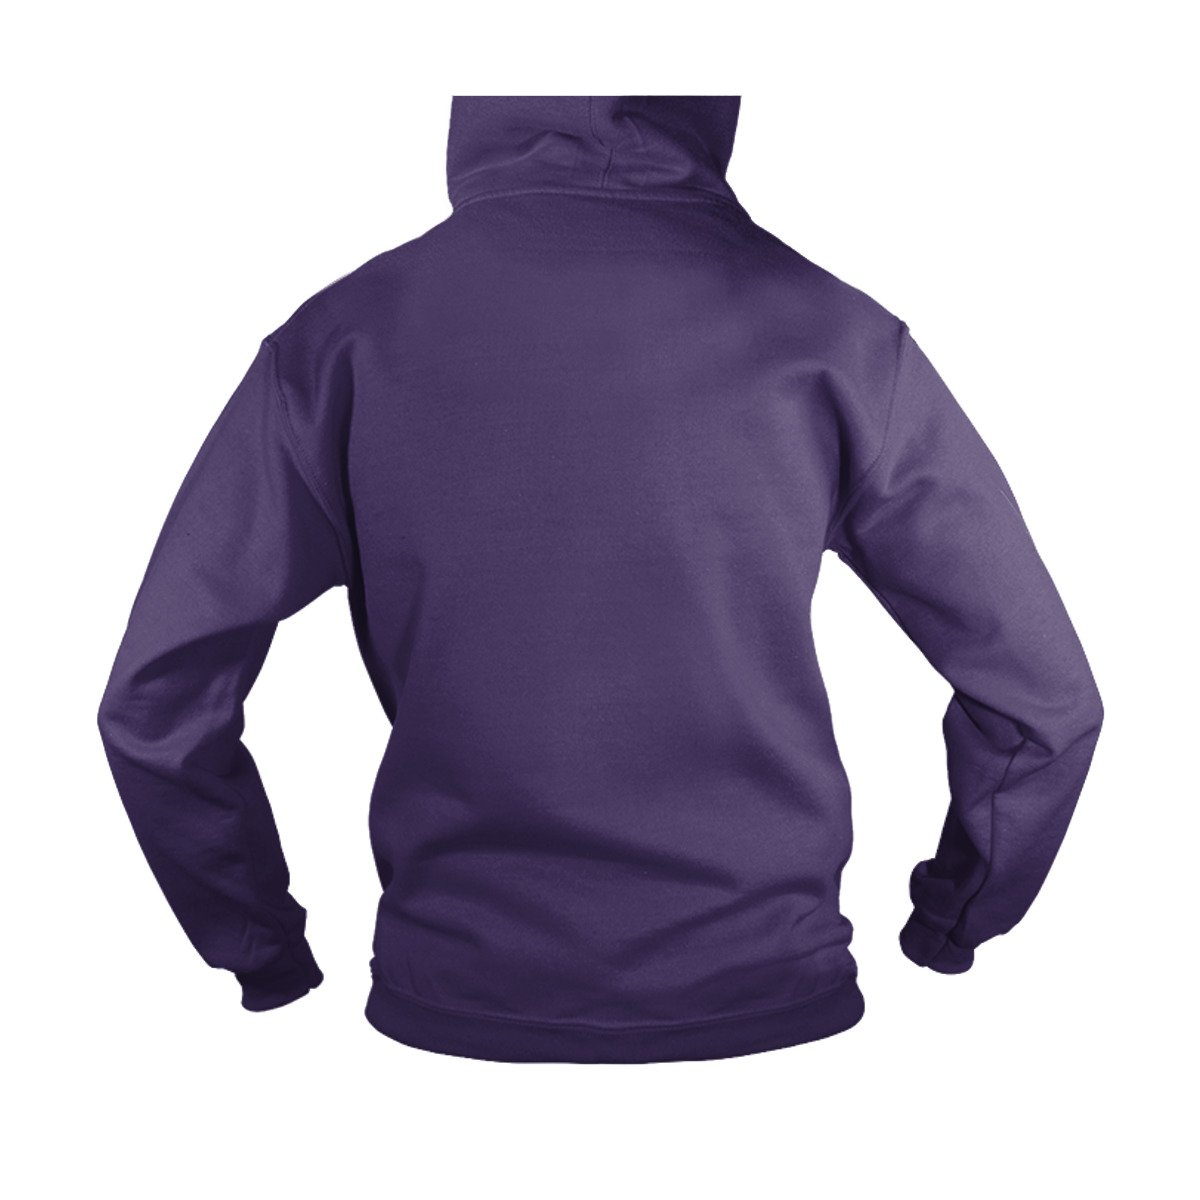 Unisex Go Get It Out The Ocean Adult Hooded Sweatshirt L, Purple